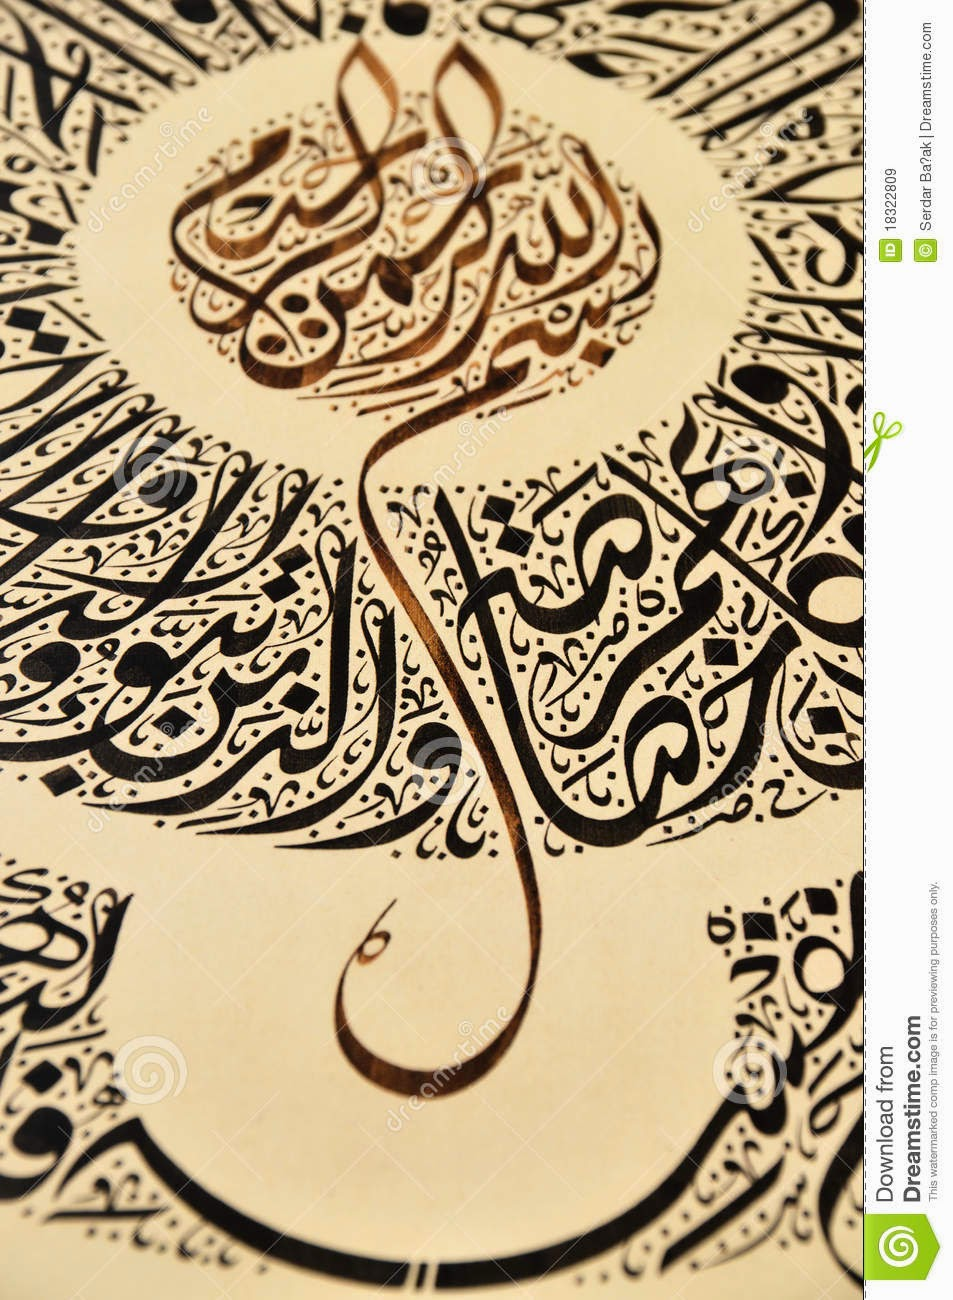 Calligraphy Why is calligraphy important to islamic art